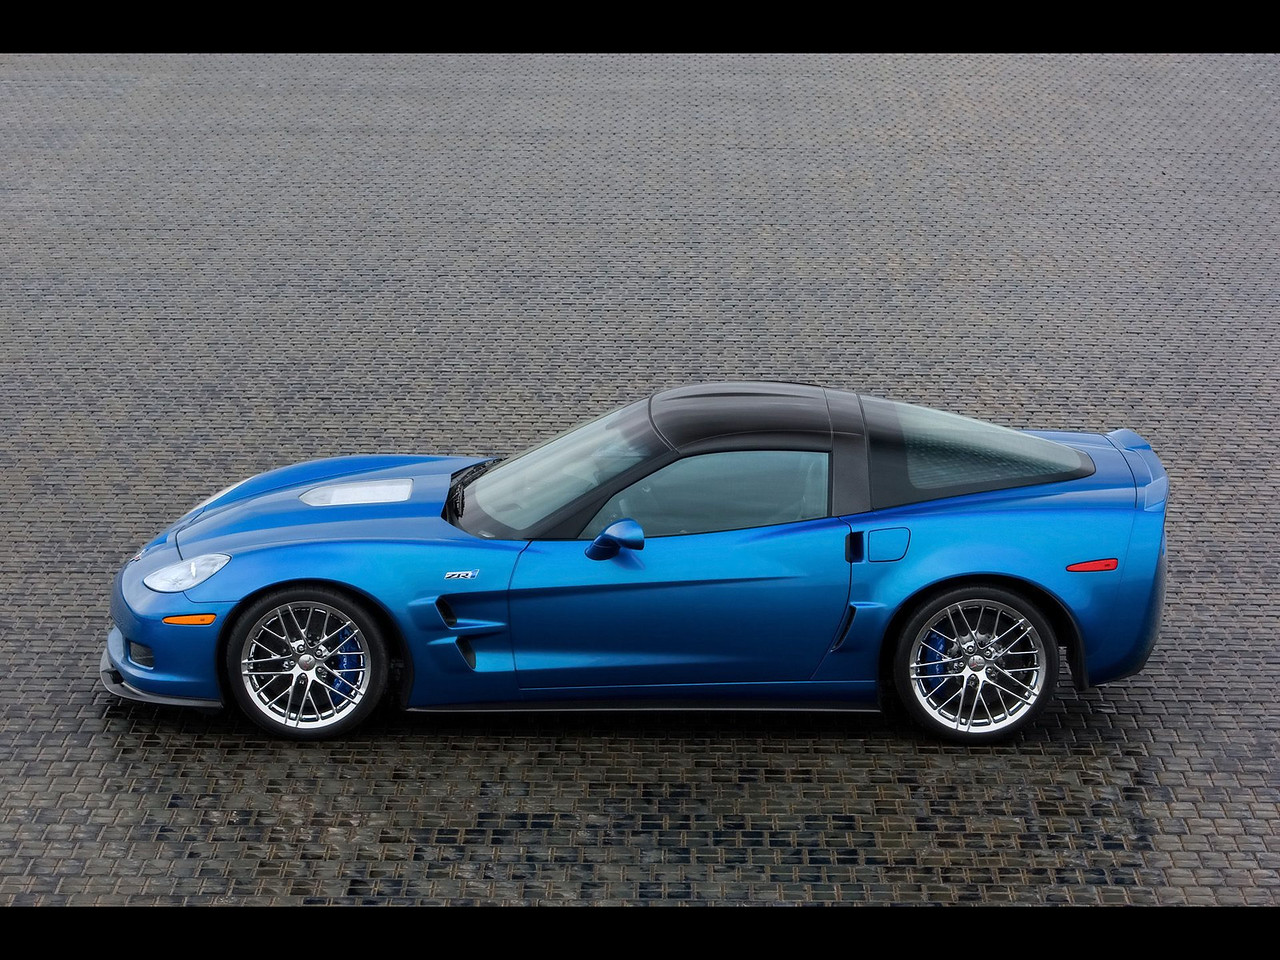 "2009 ZR1 ""Blue Devil""  Permission given to use this image with credit to the National Corvette Museum"